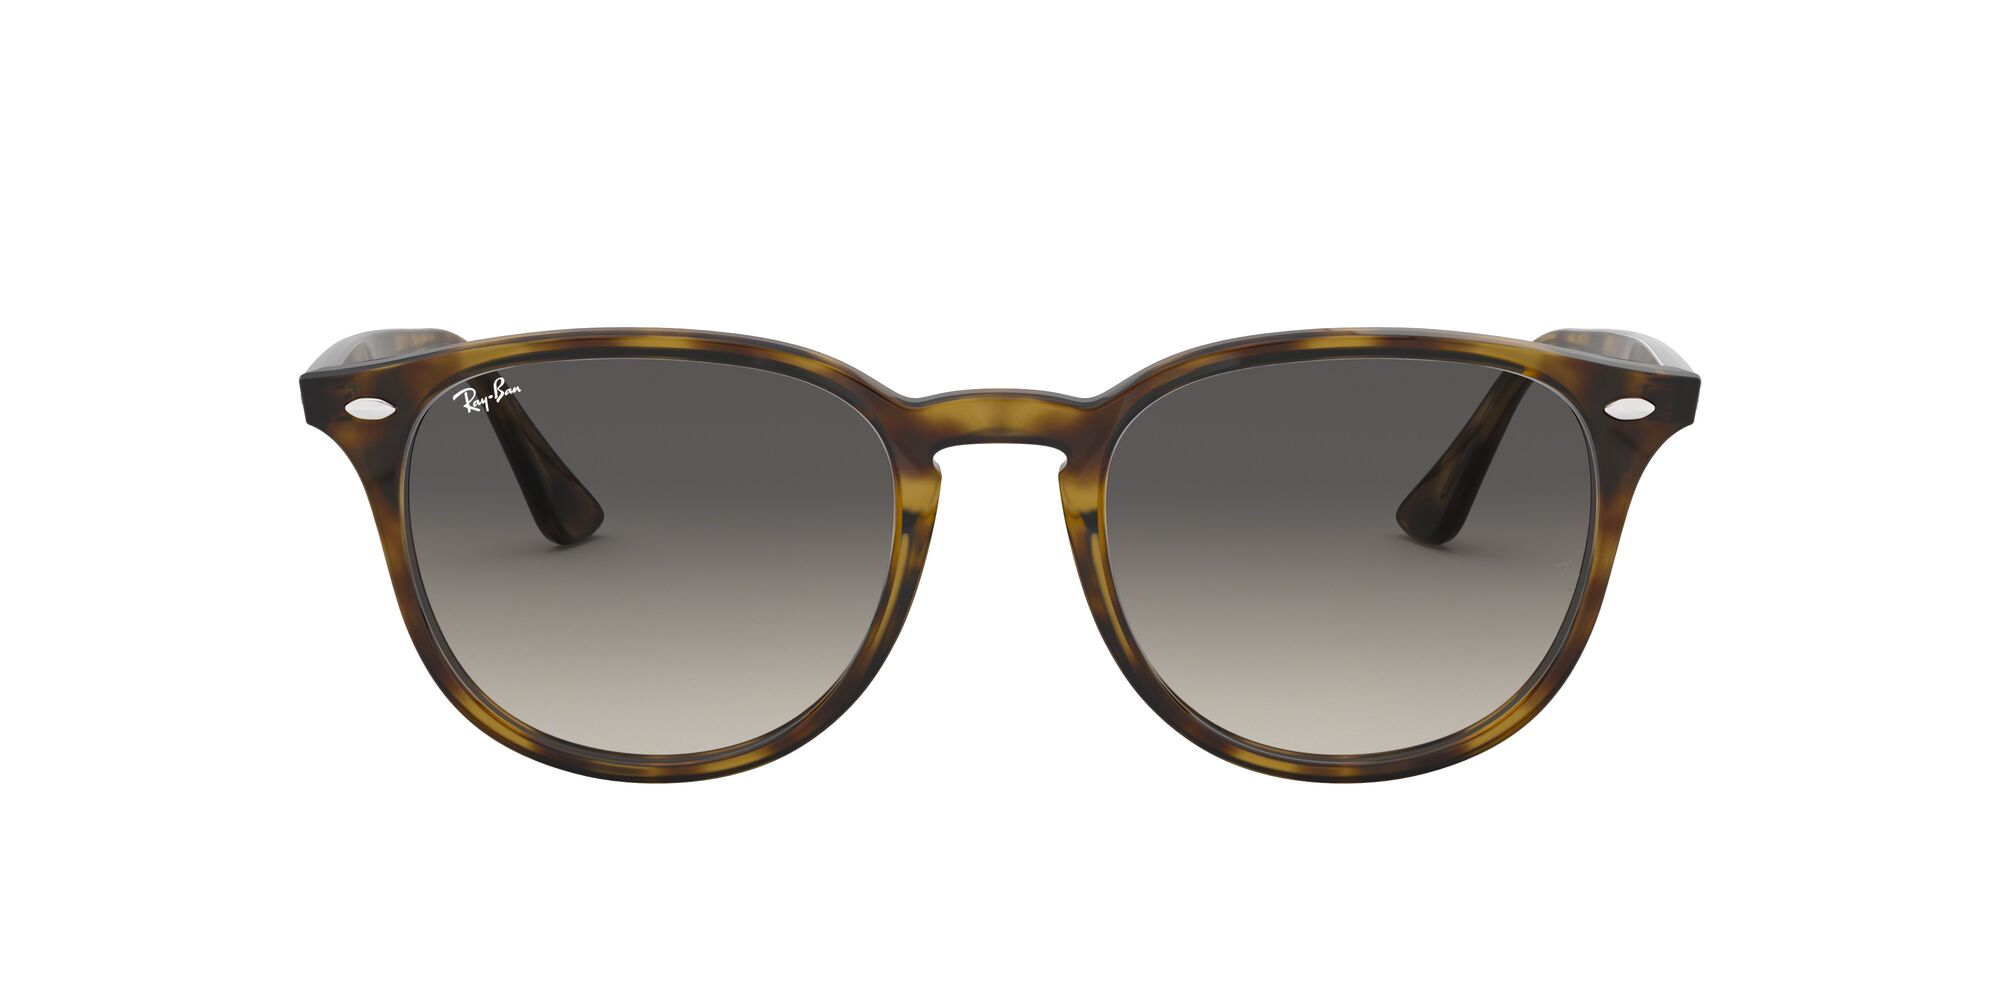 Front Ray-Ban Ray-Ban 0RB4259 710/11 51/20 Zilver, Bruin/Grijs